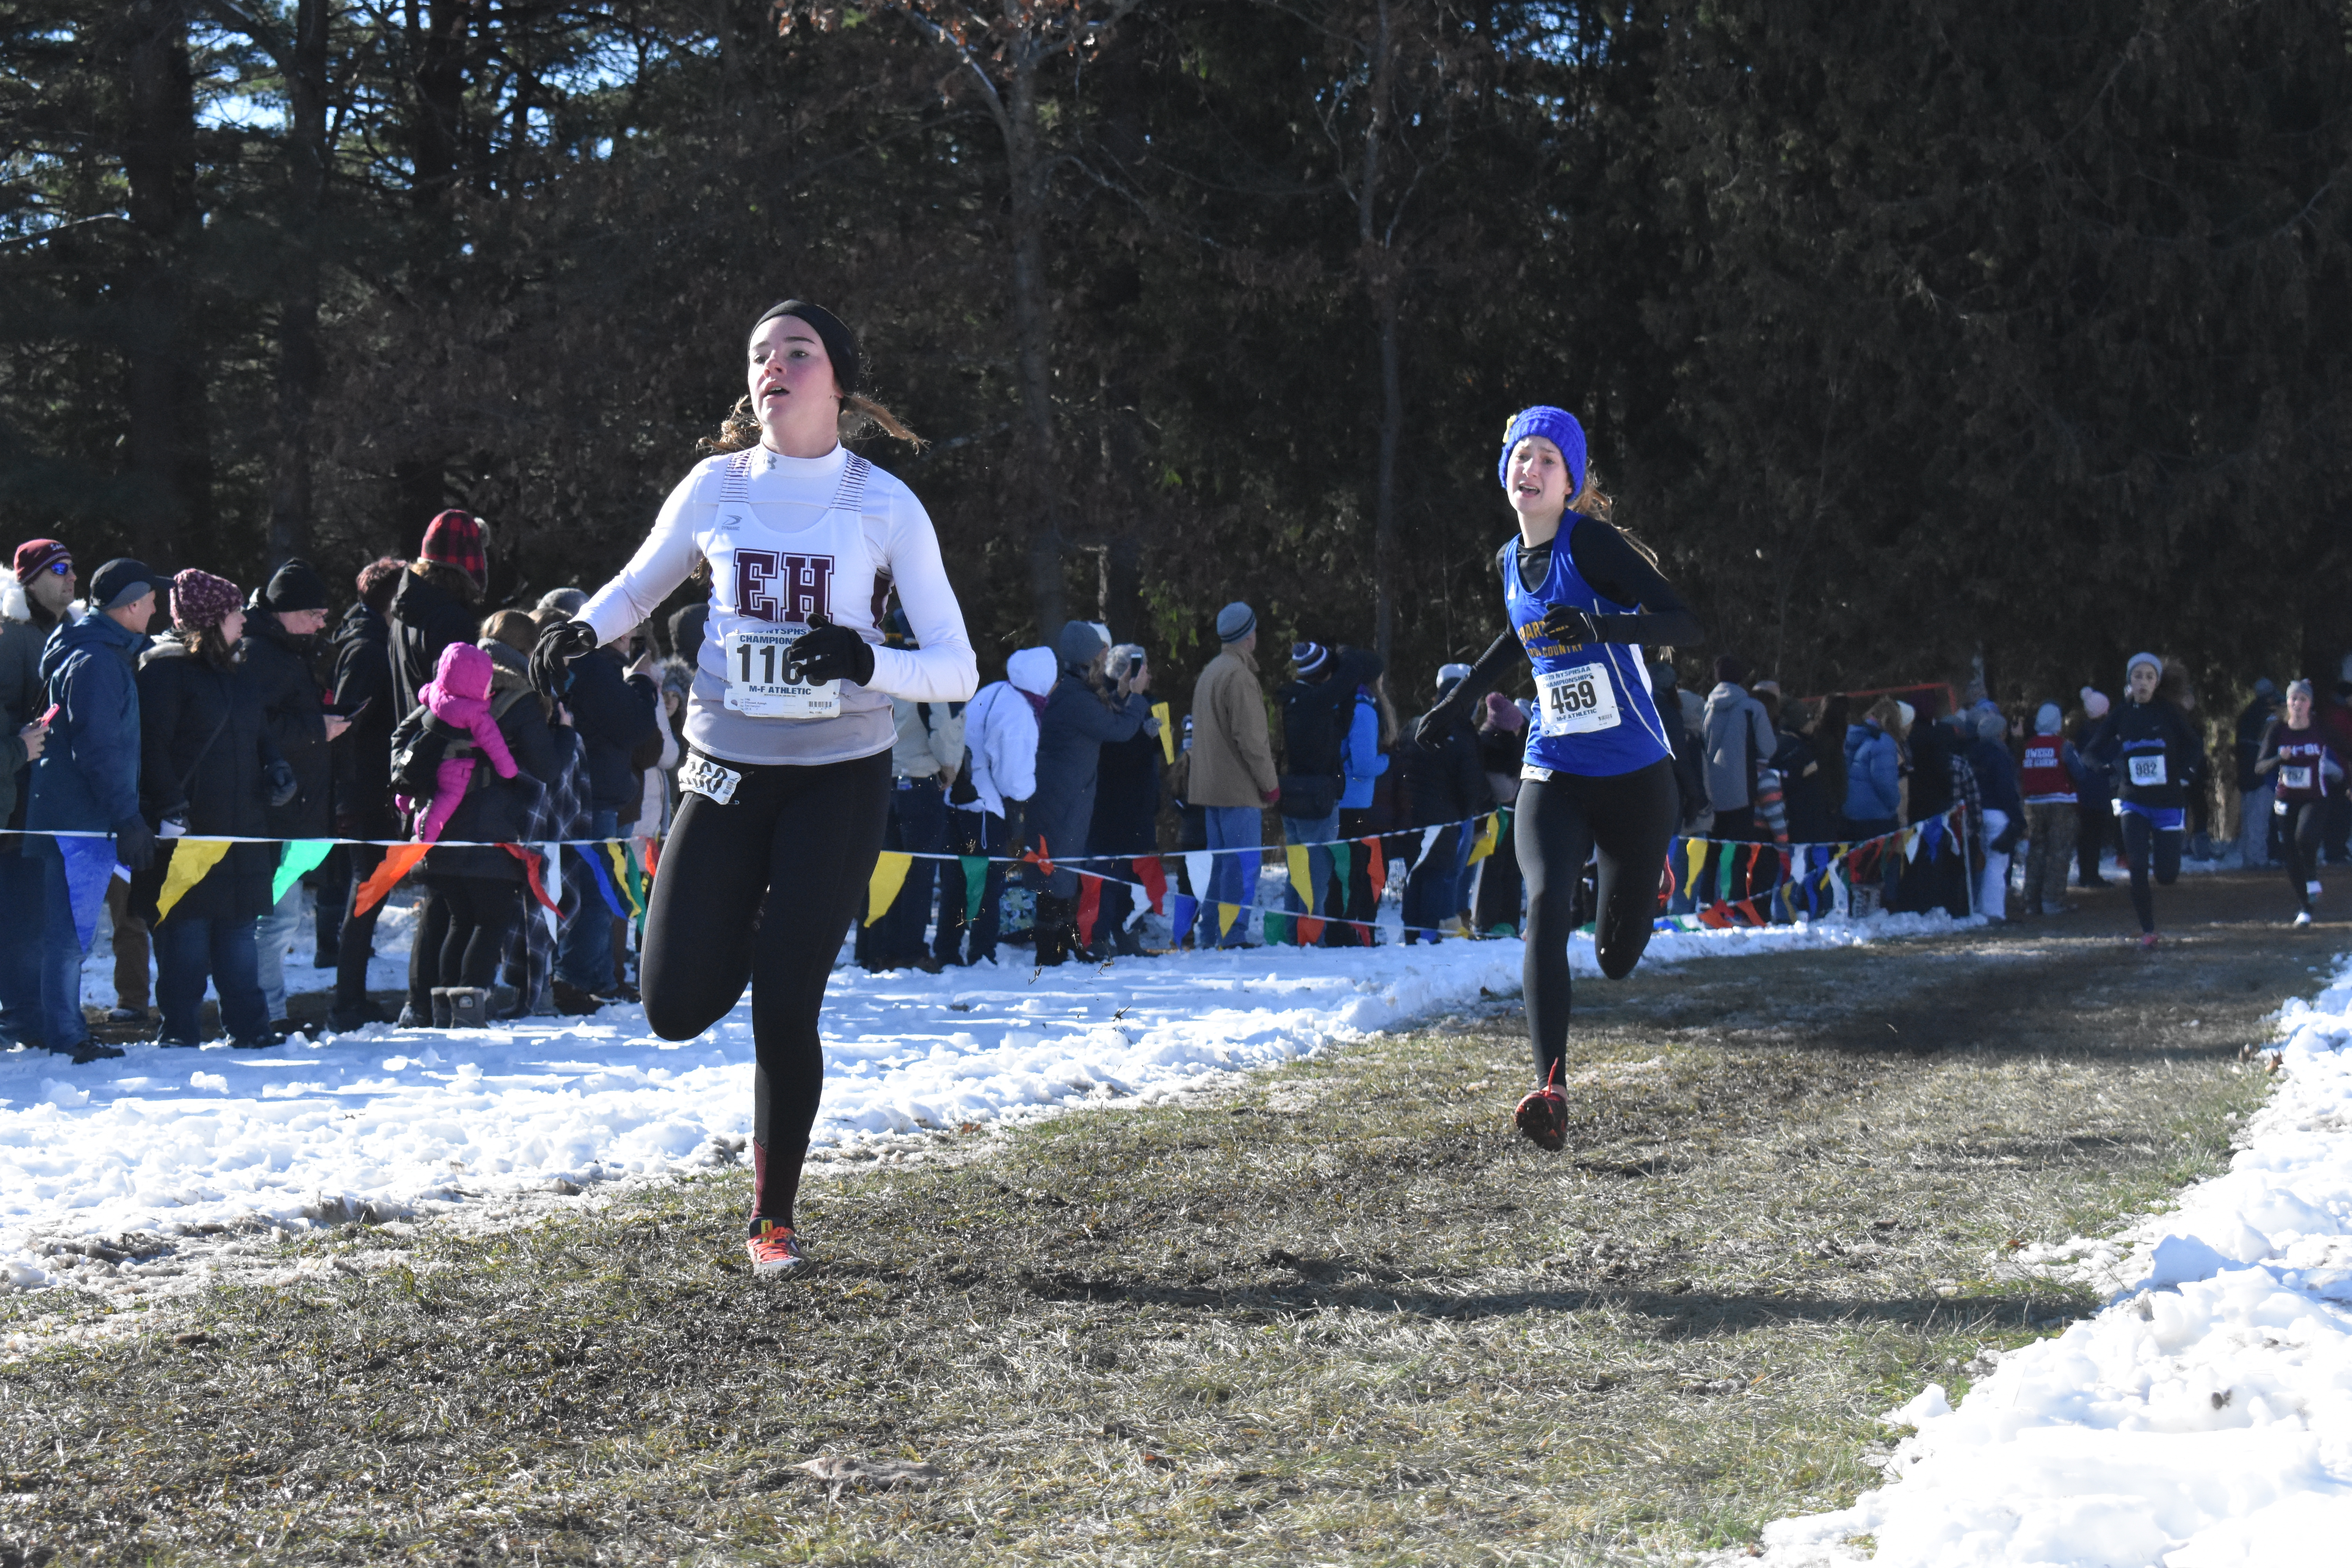 East Hampton's Ryleigh O'Donnell reaches the finish line.